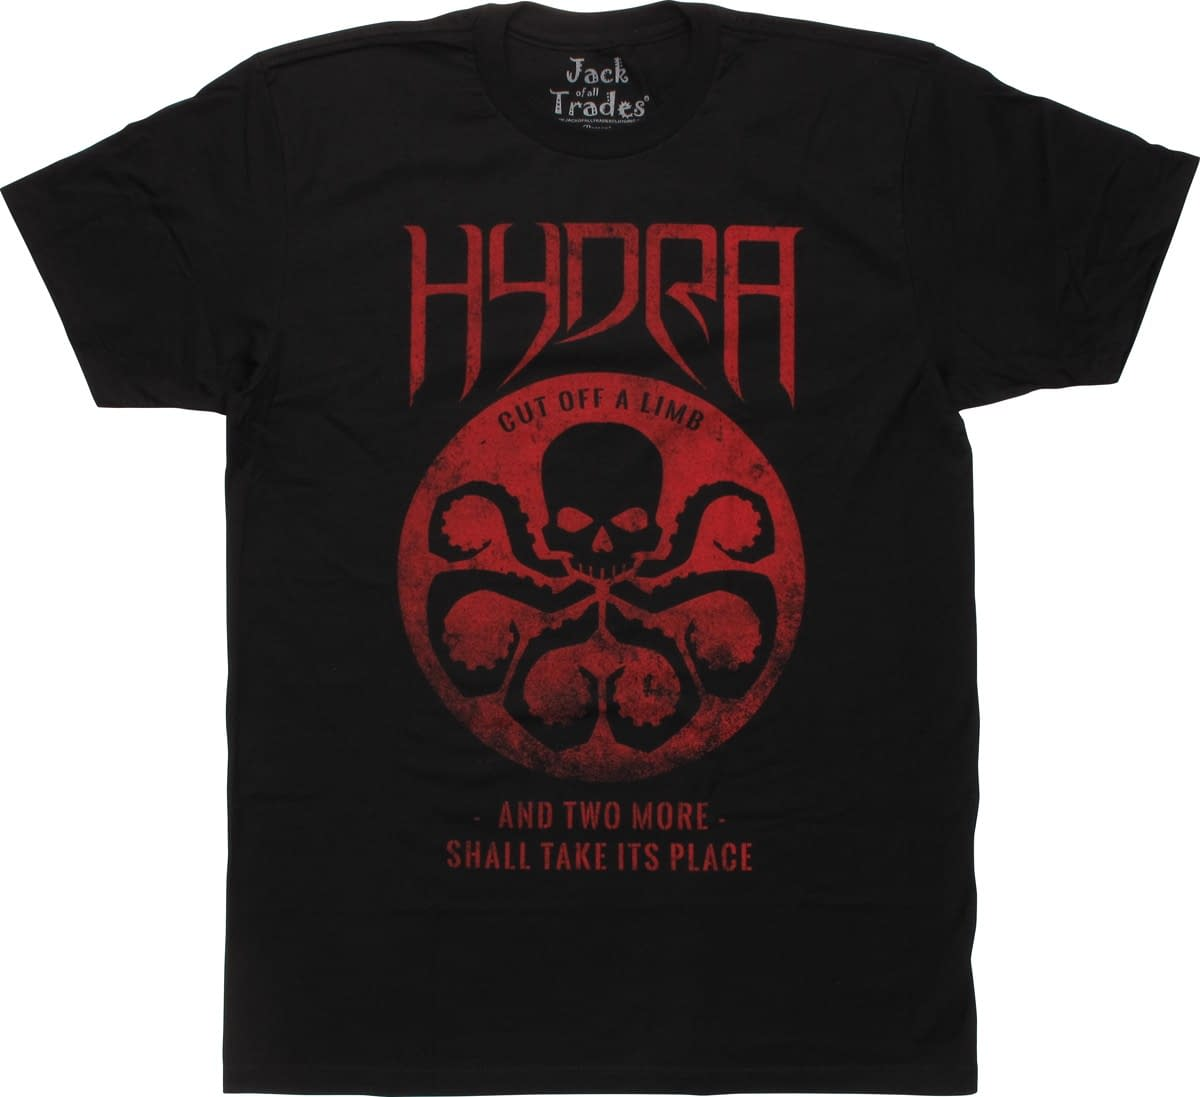 White Supremacist Spotted On CNN Wearing Hydra T-Shirt